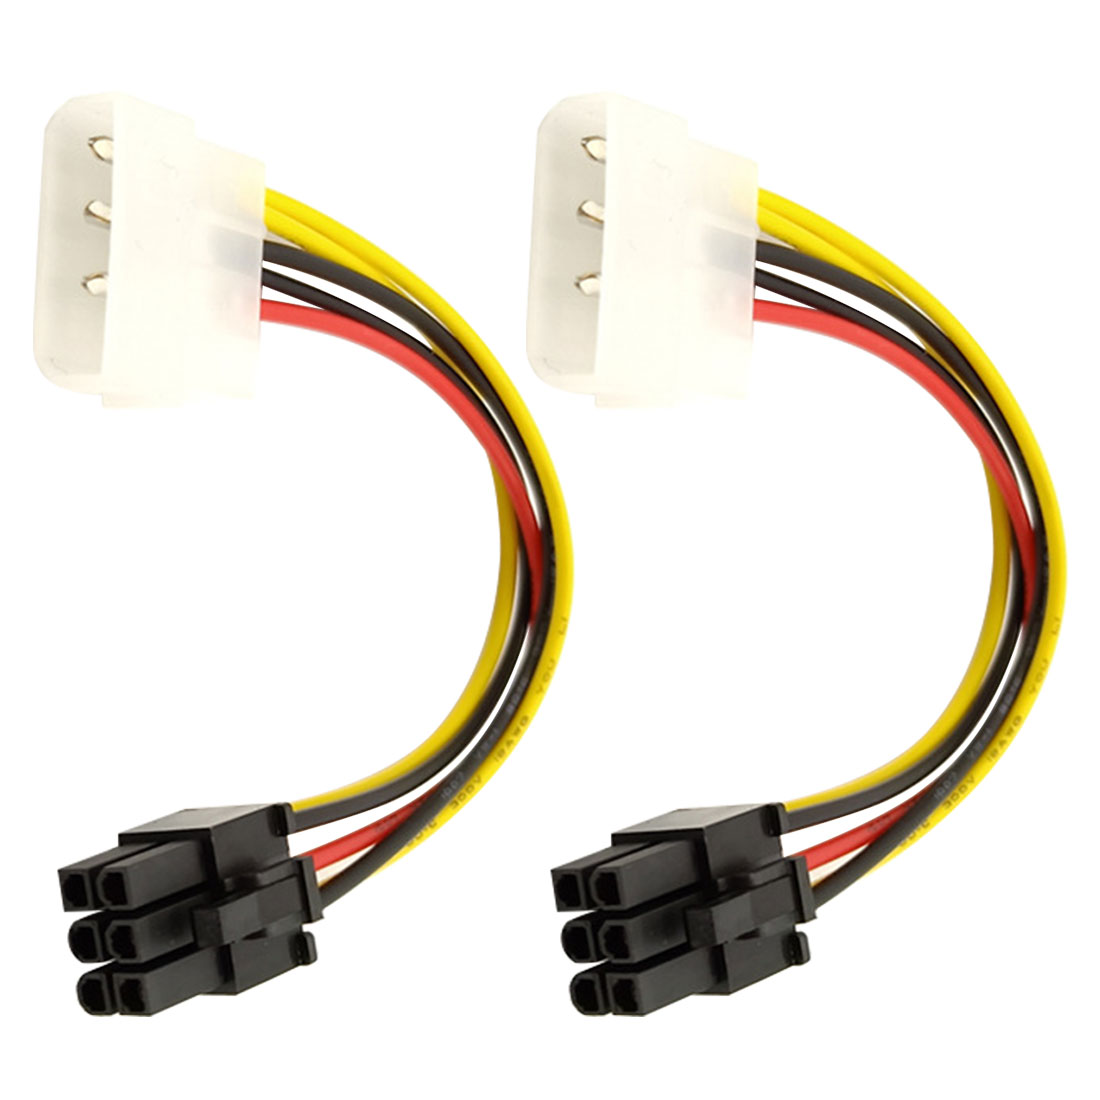 1Pcs High Quality 4 Pin Molex To 6 Pin PCI-Express PCIE Video Card Power Converter Adapter Cable 20CM